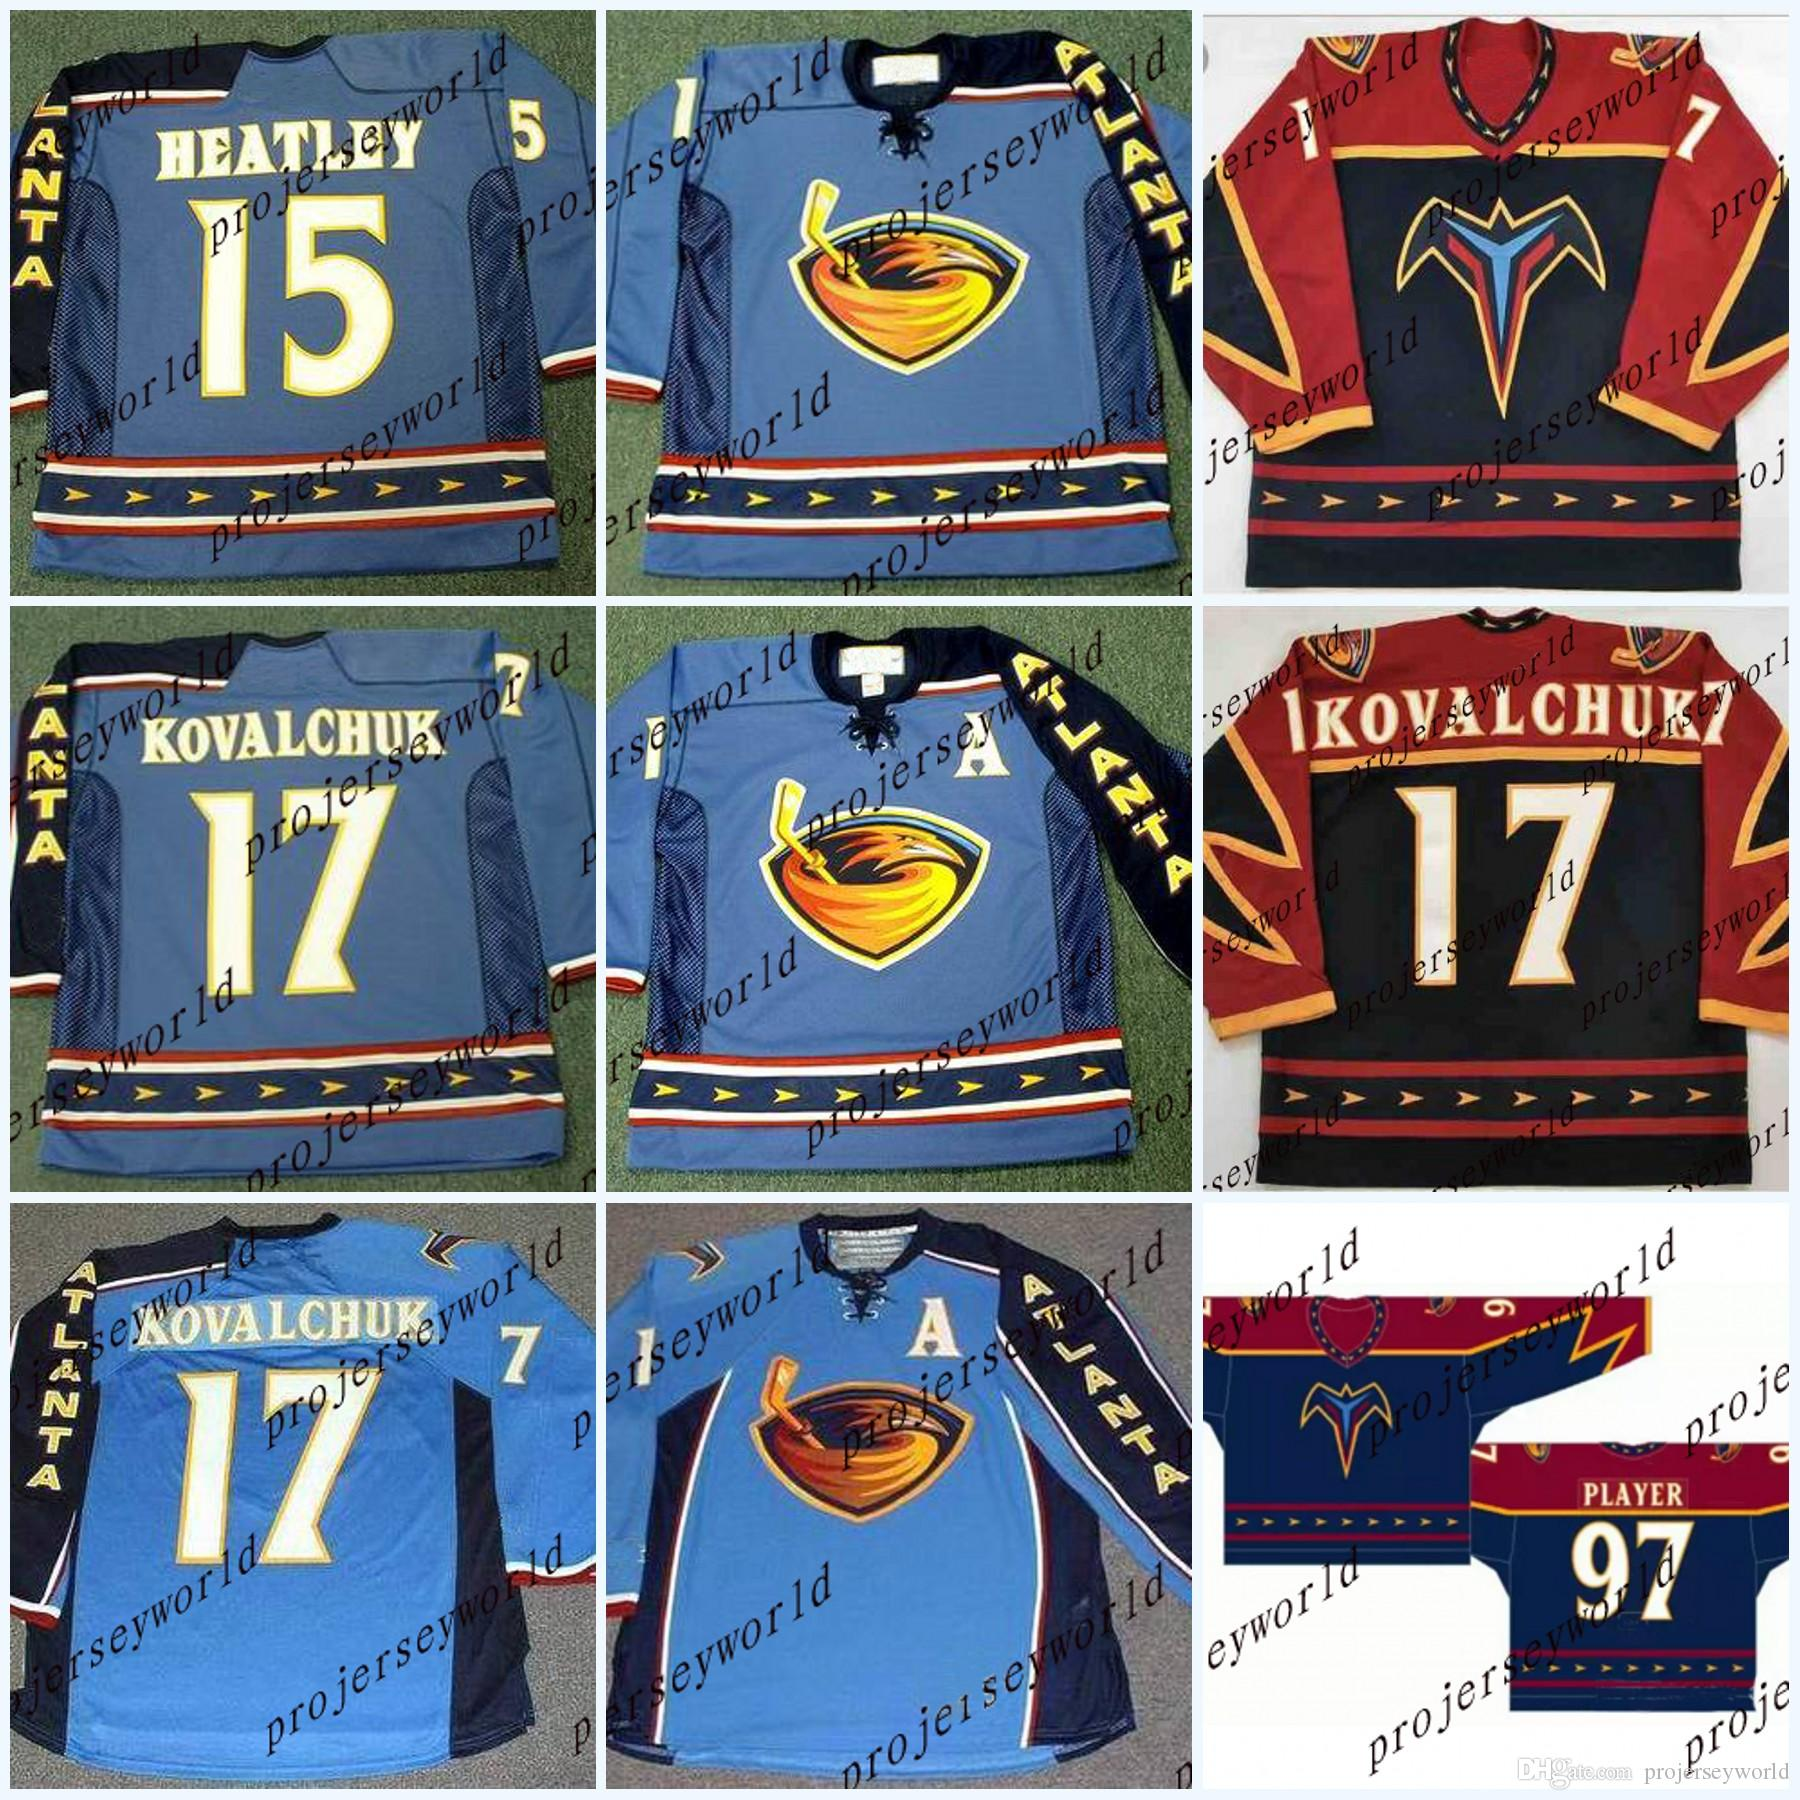 newest b2451 6cbfc Atlanta Thrashers Jerseys #17 ILYA KOVALCHUK 2003 #15 DANY HEATLEY #16  Buchberger #97 Player 2003 Vintage Hockey Jerseys